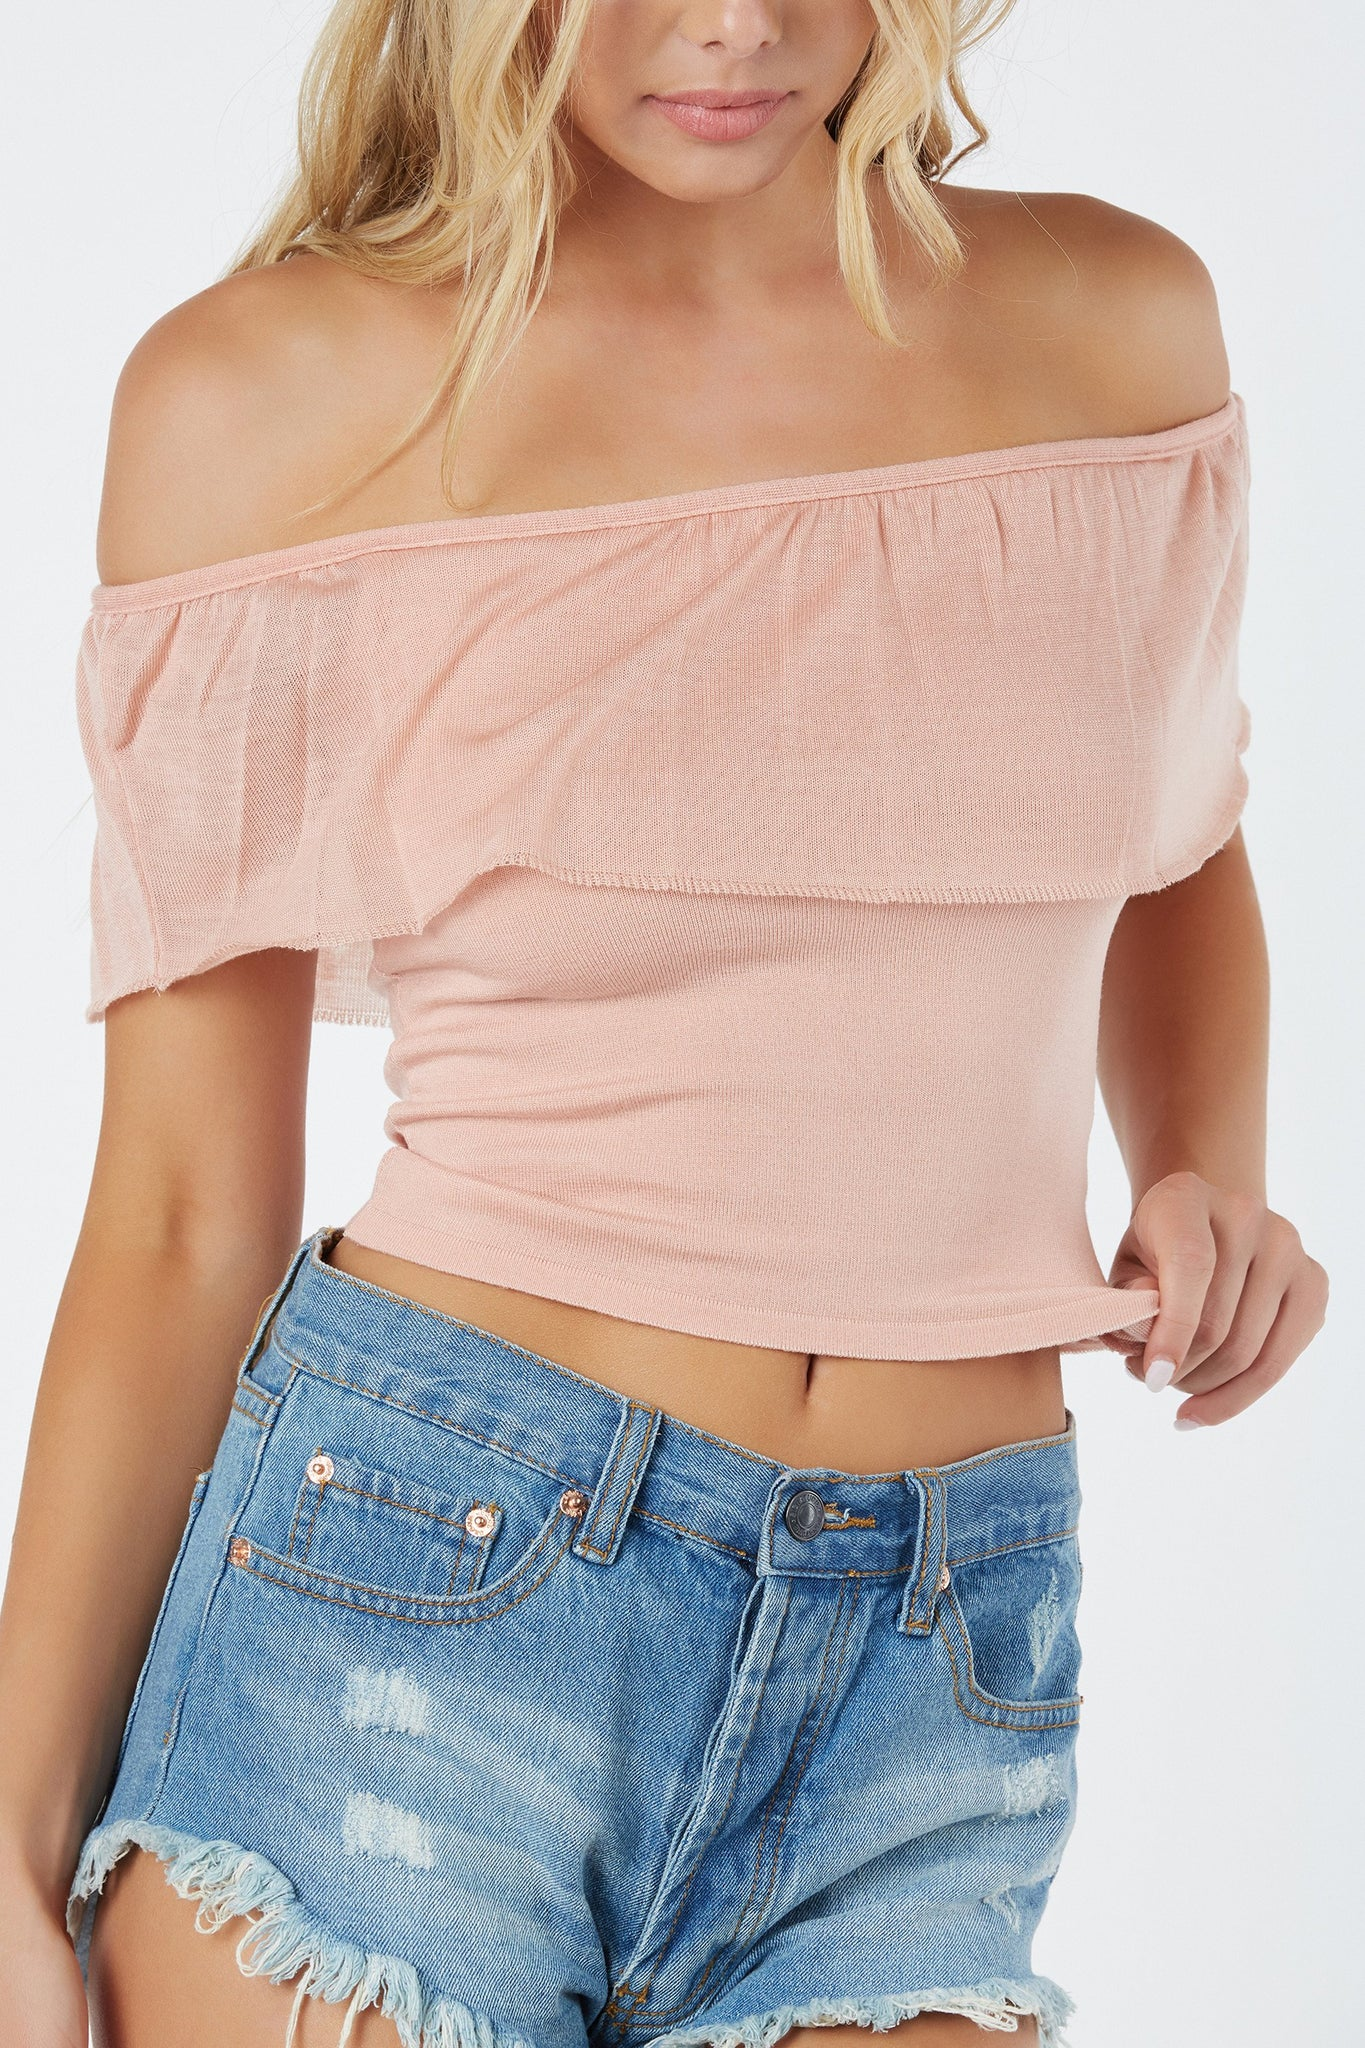 Tiered off shoulder top with sheer overlay. Stretchy material with straight hem finish all around.